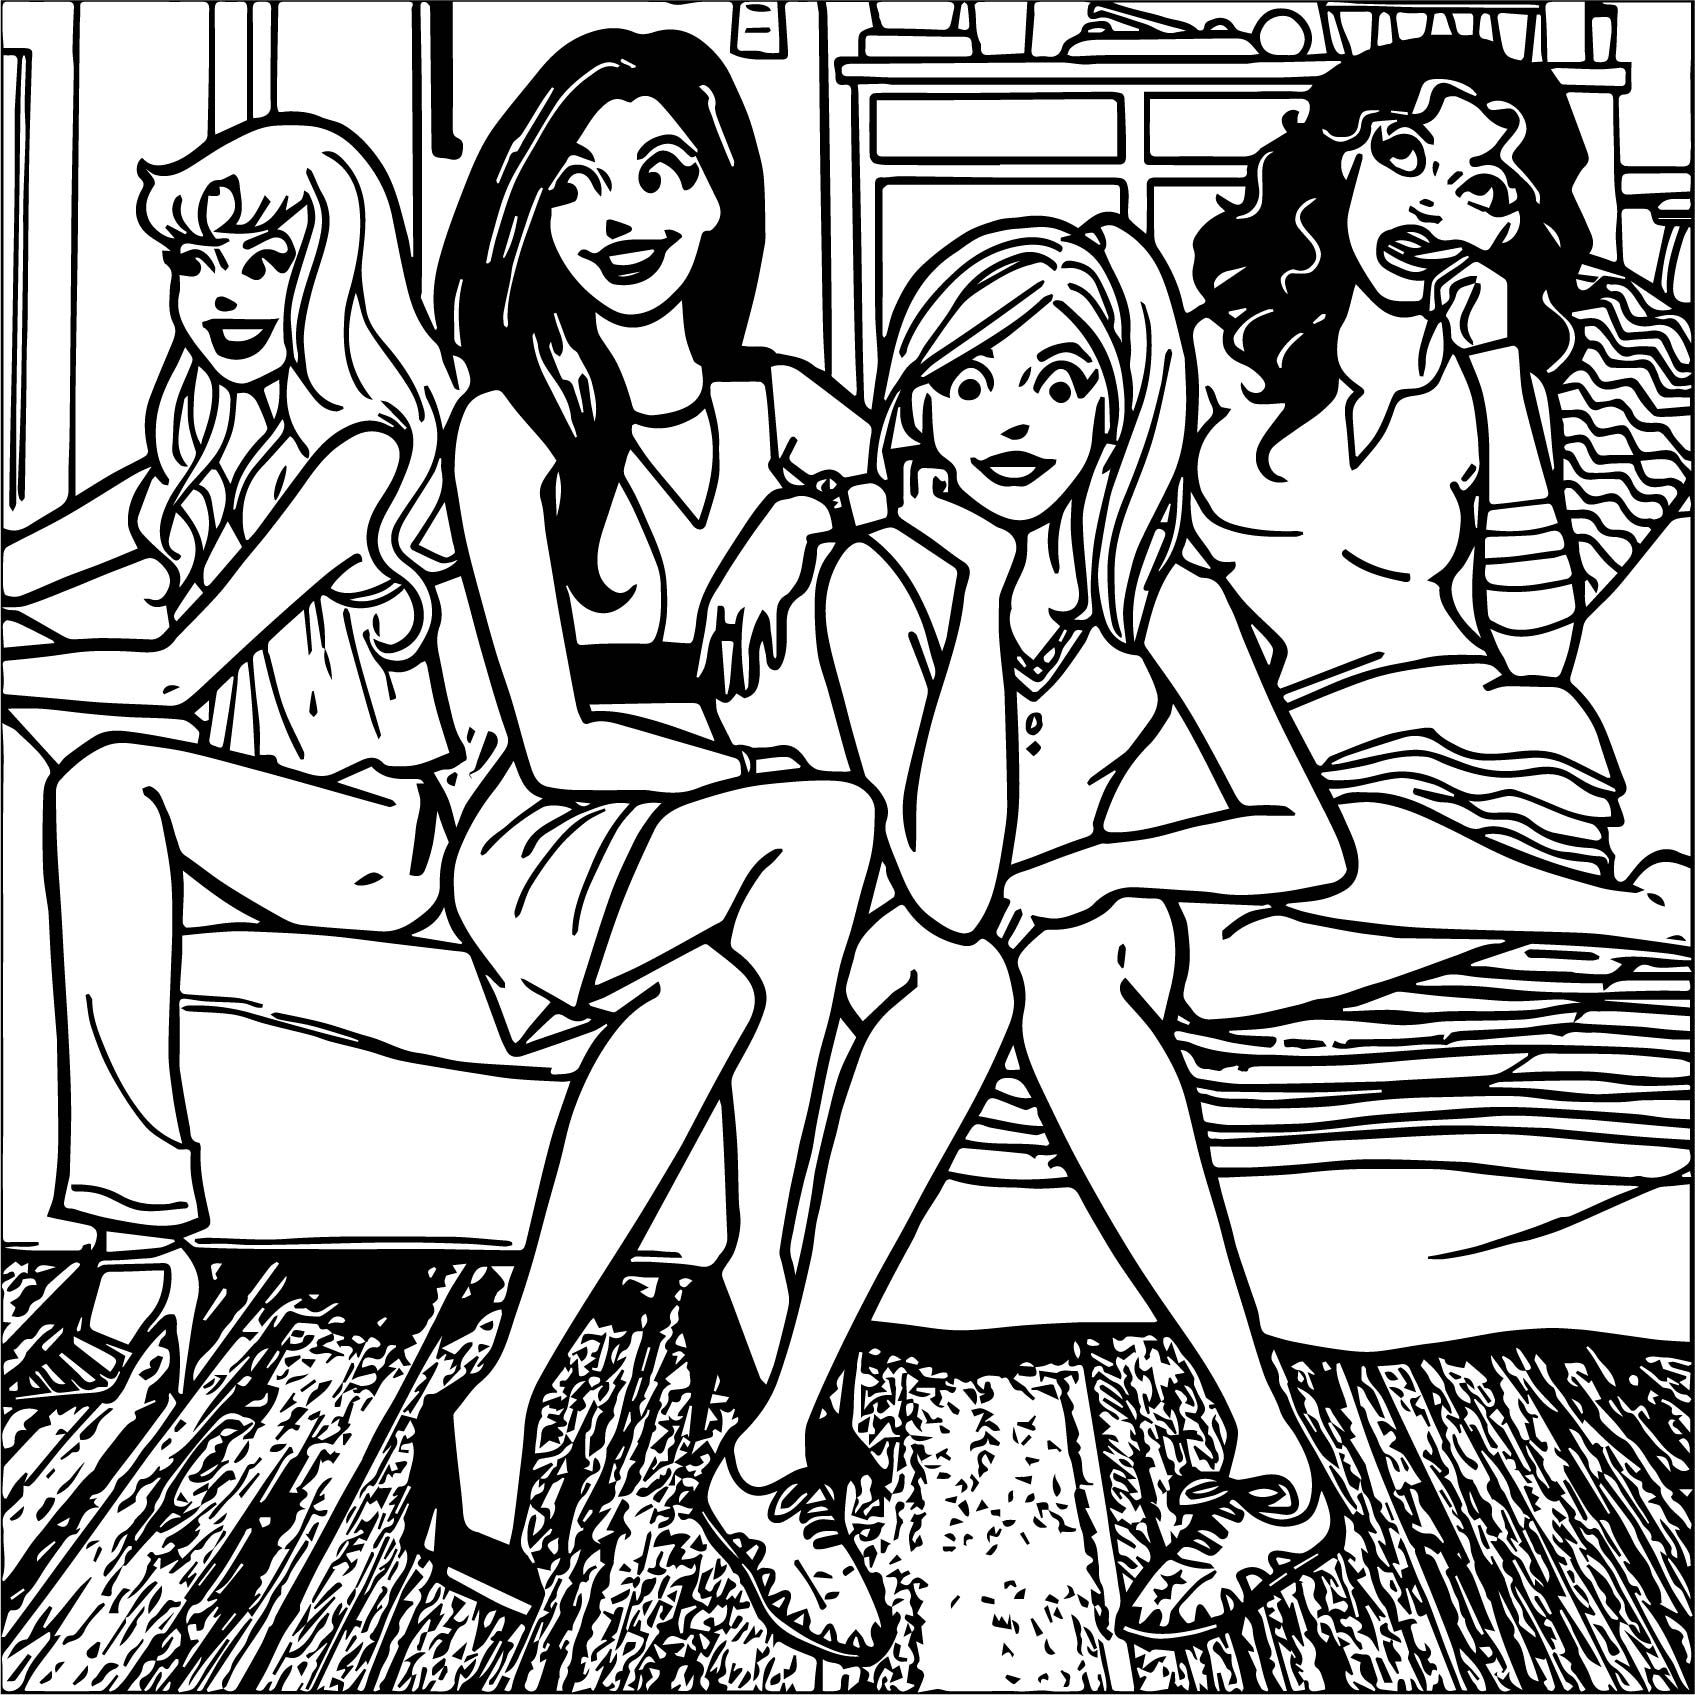 riverdale coloring pages nice Inline How Archie Comics New Chief Creative Officer Is Going  riverdale coloring pages